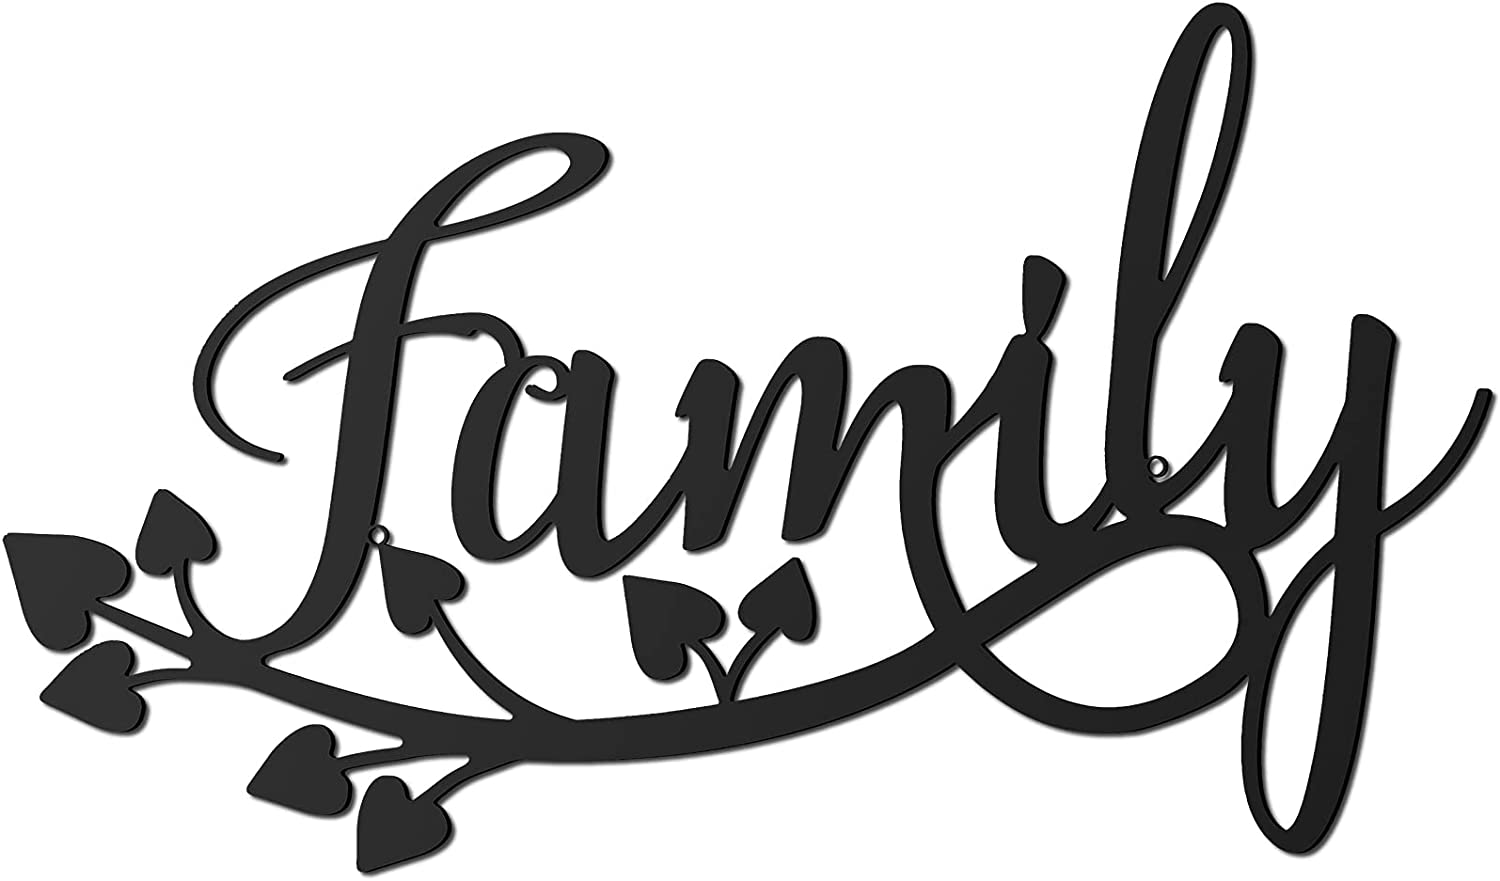 Family Metal Wall Sign Black Metal Word Sign Family Hanging Wall Art Country Home Decor for Home Dining Room Kitchen Door Decorations